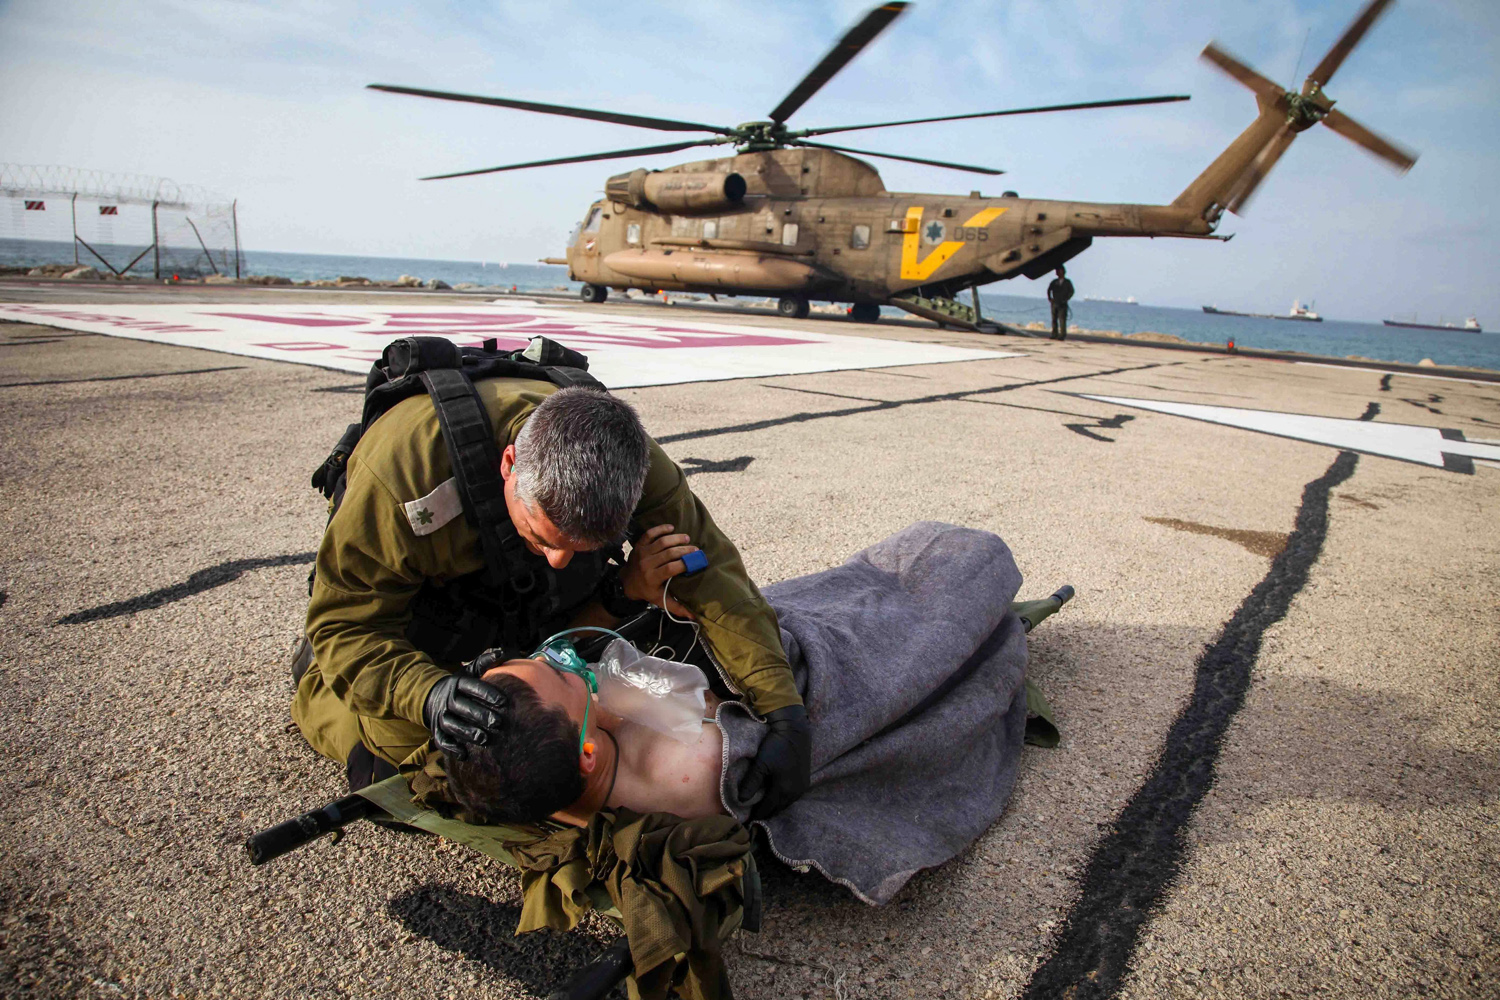 Mar. 18, 2014. An Israeli army officer comforts a wounded Israeli soldier after he is unloaded from an army helicopter at a landing base in Haifa's Rambam Hospital, in northern Israel.